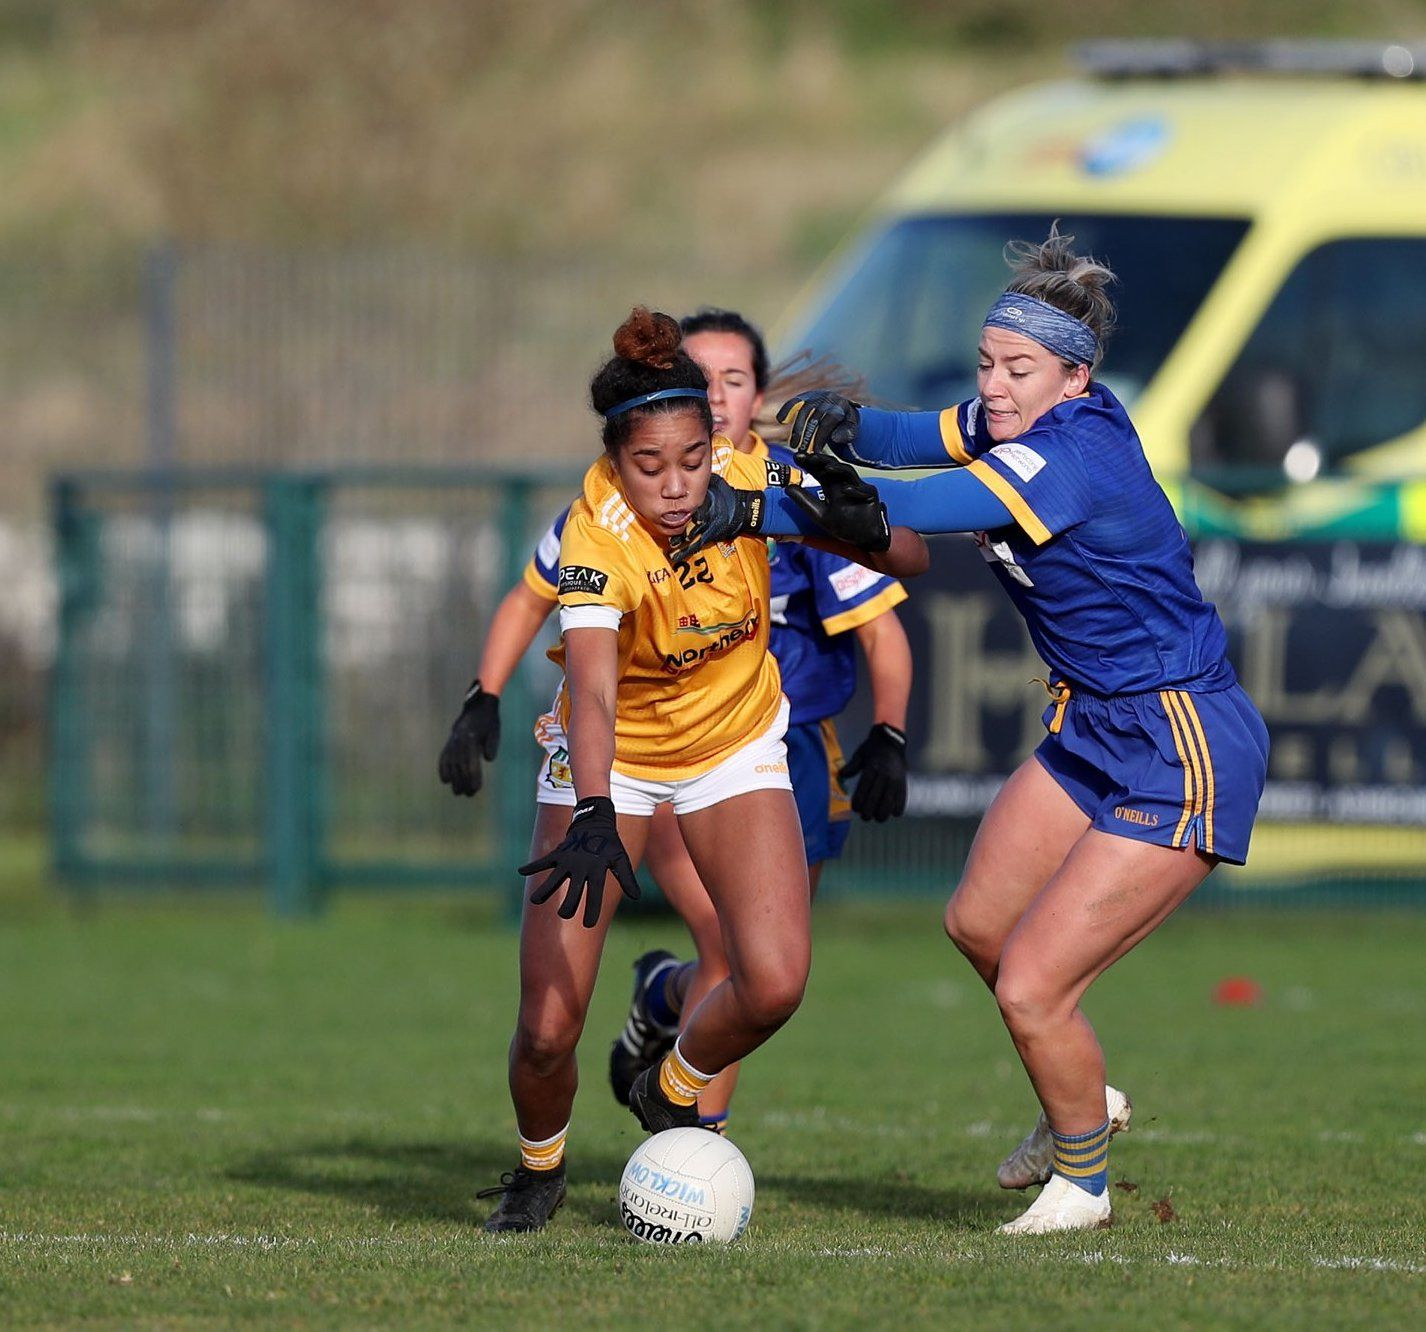 Lara Dahunsi gets to the ball first despite Wicklow challenges